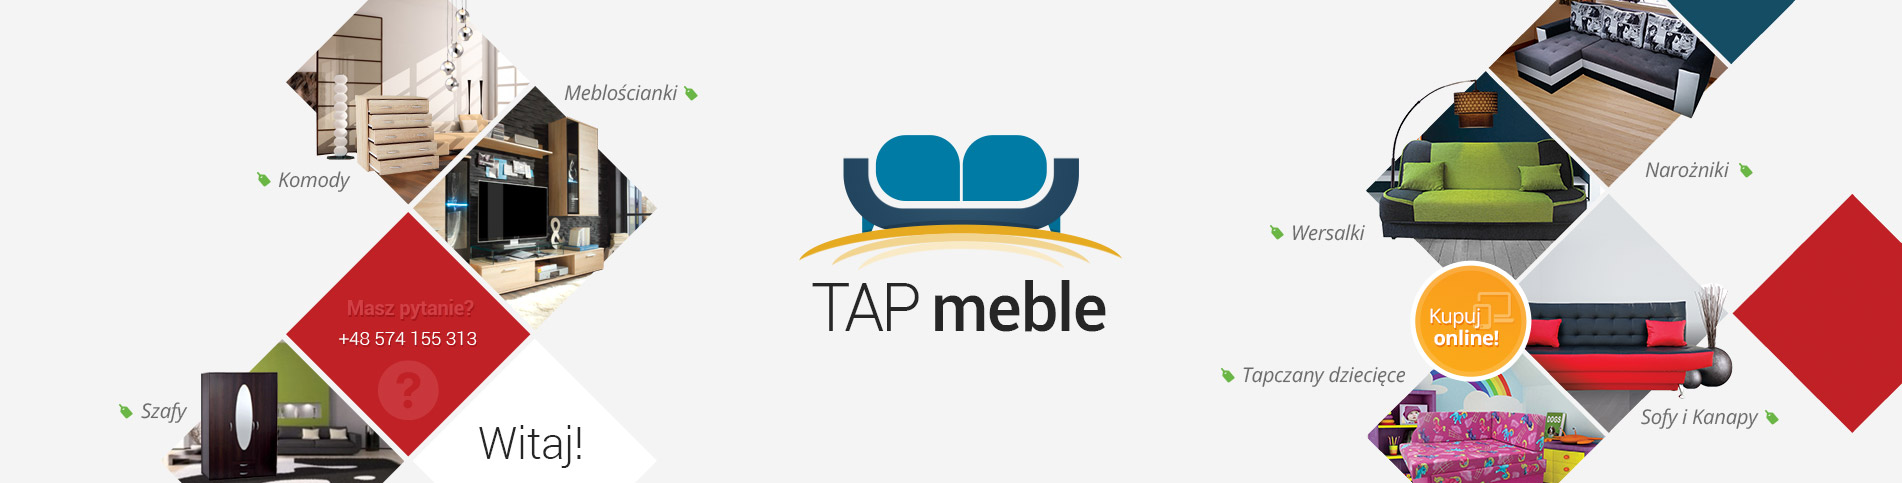 TAP meble